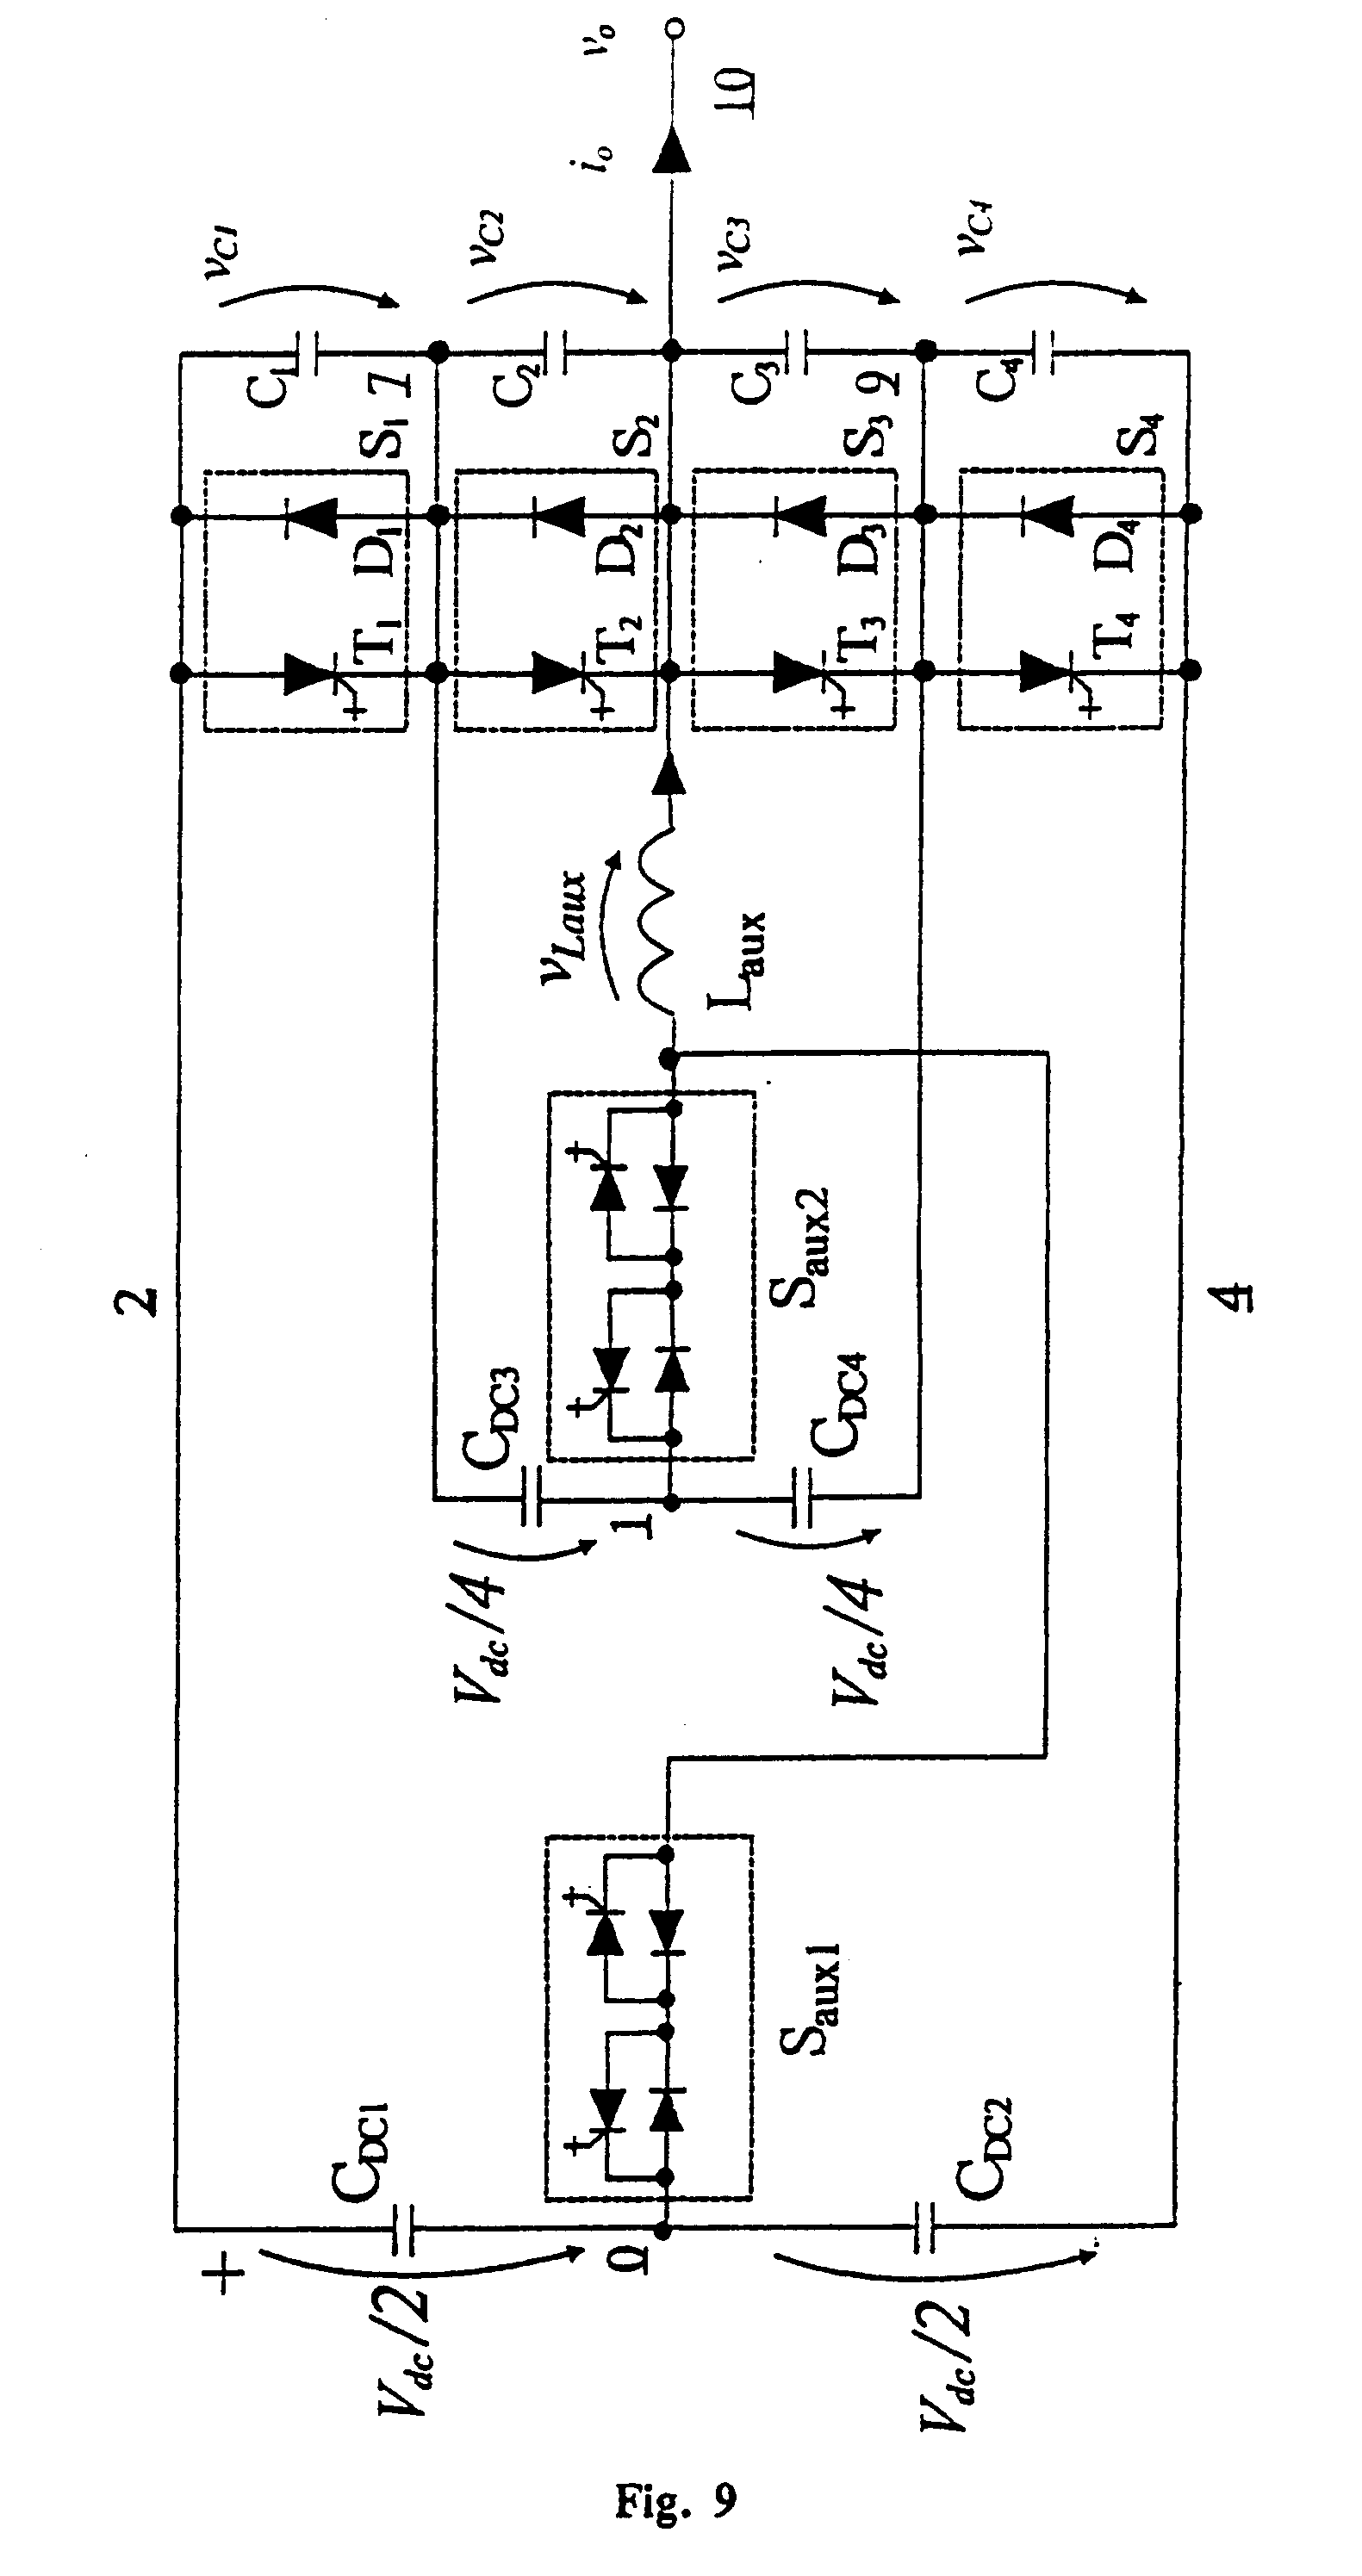 in a parallel circuit each load is electrically connected to the